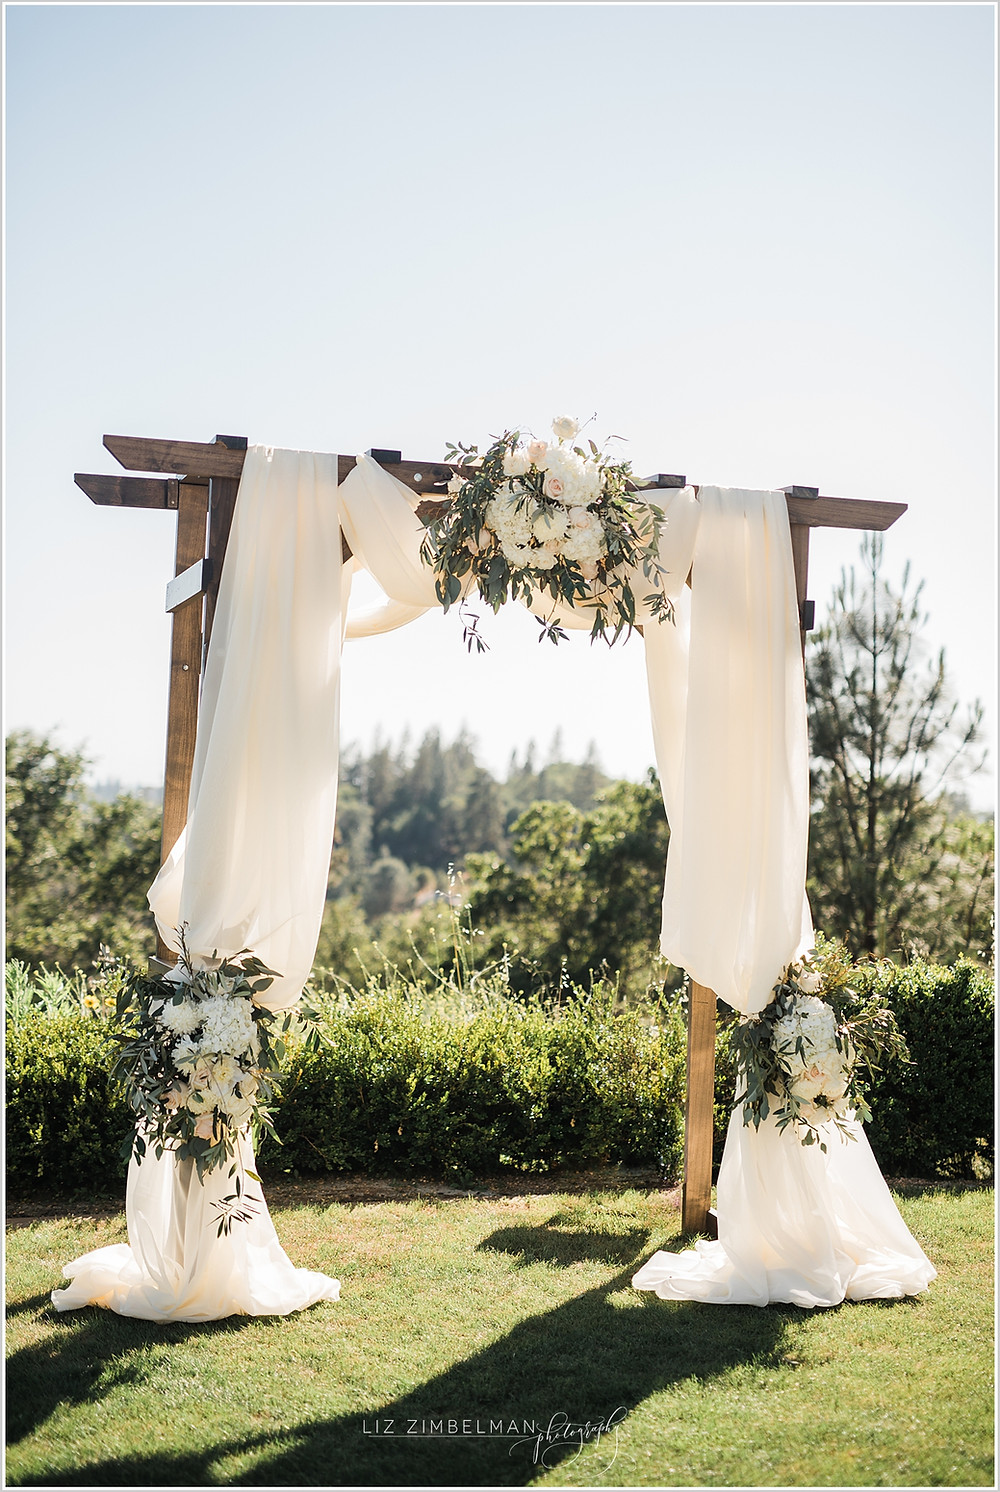 Wooden wedding arch with fabric and floral swags